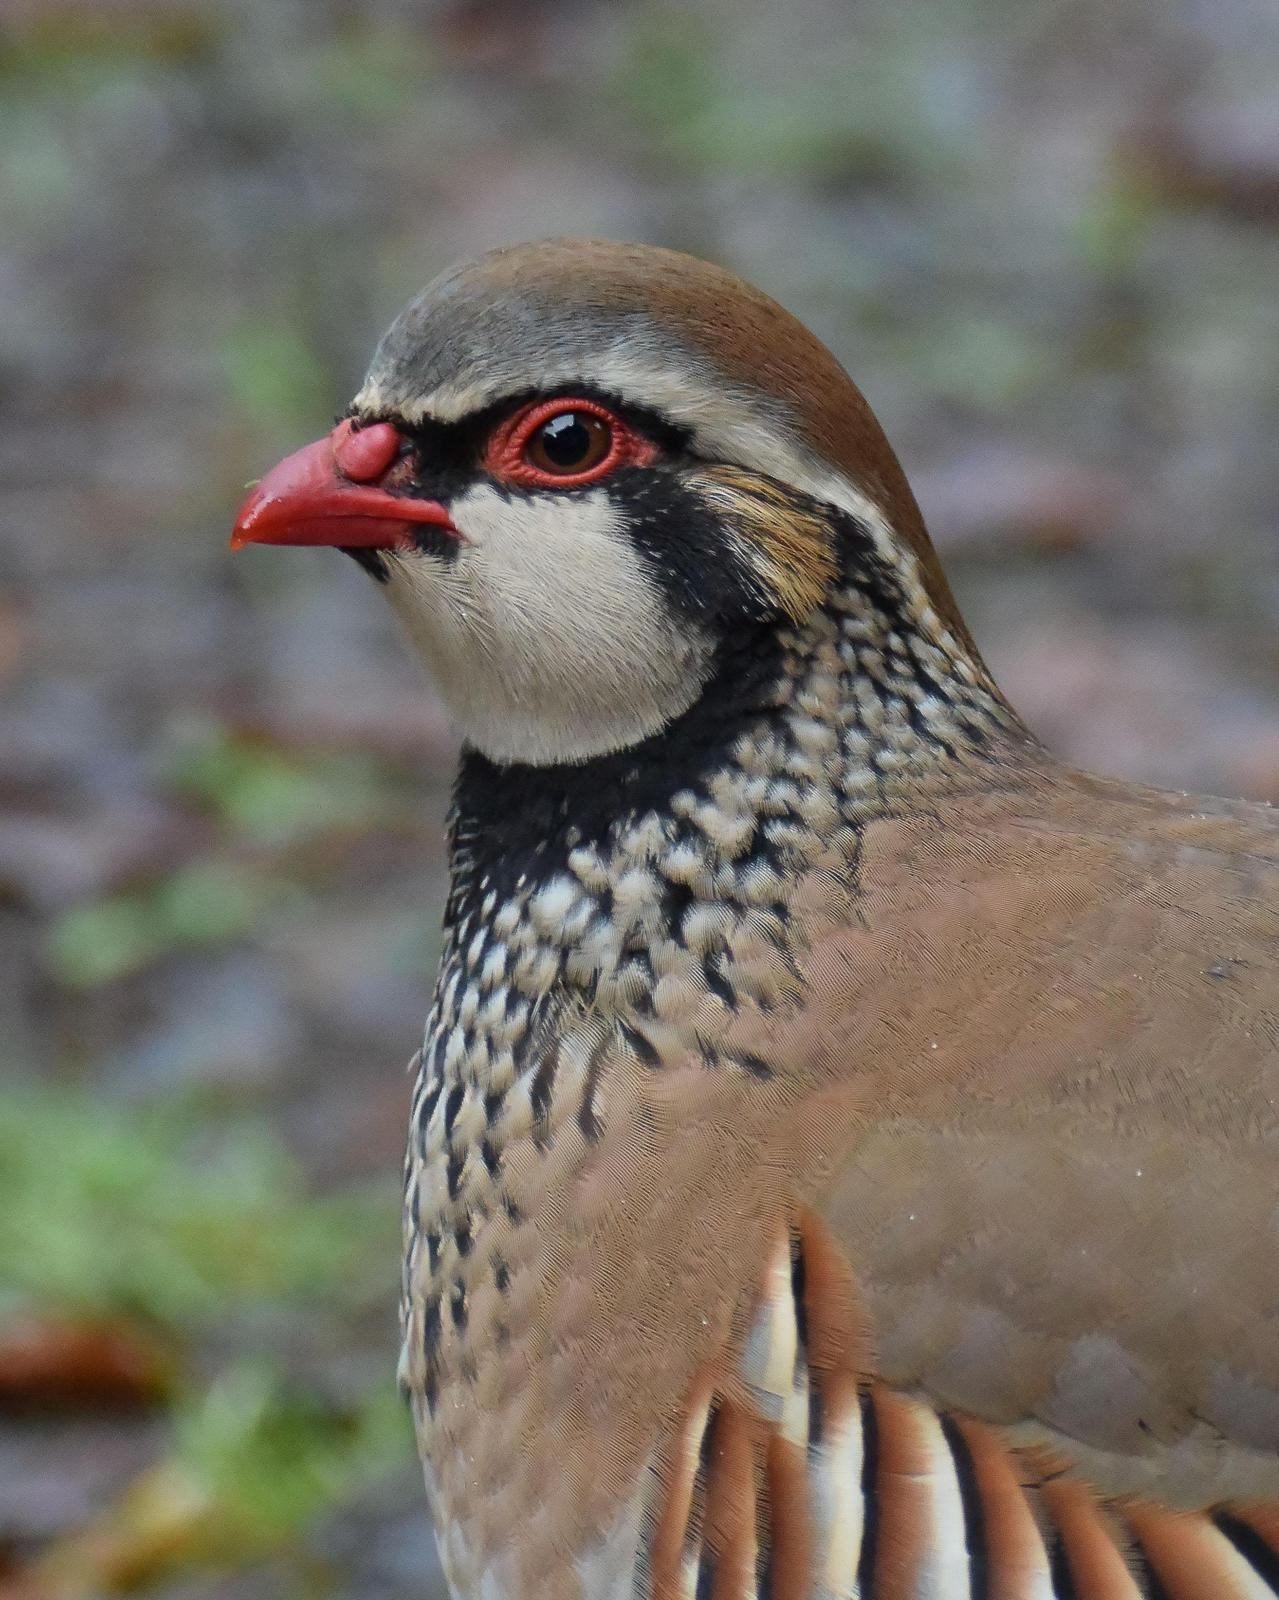 Red-legged Partridge Photo by Steve Percival